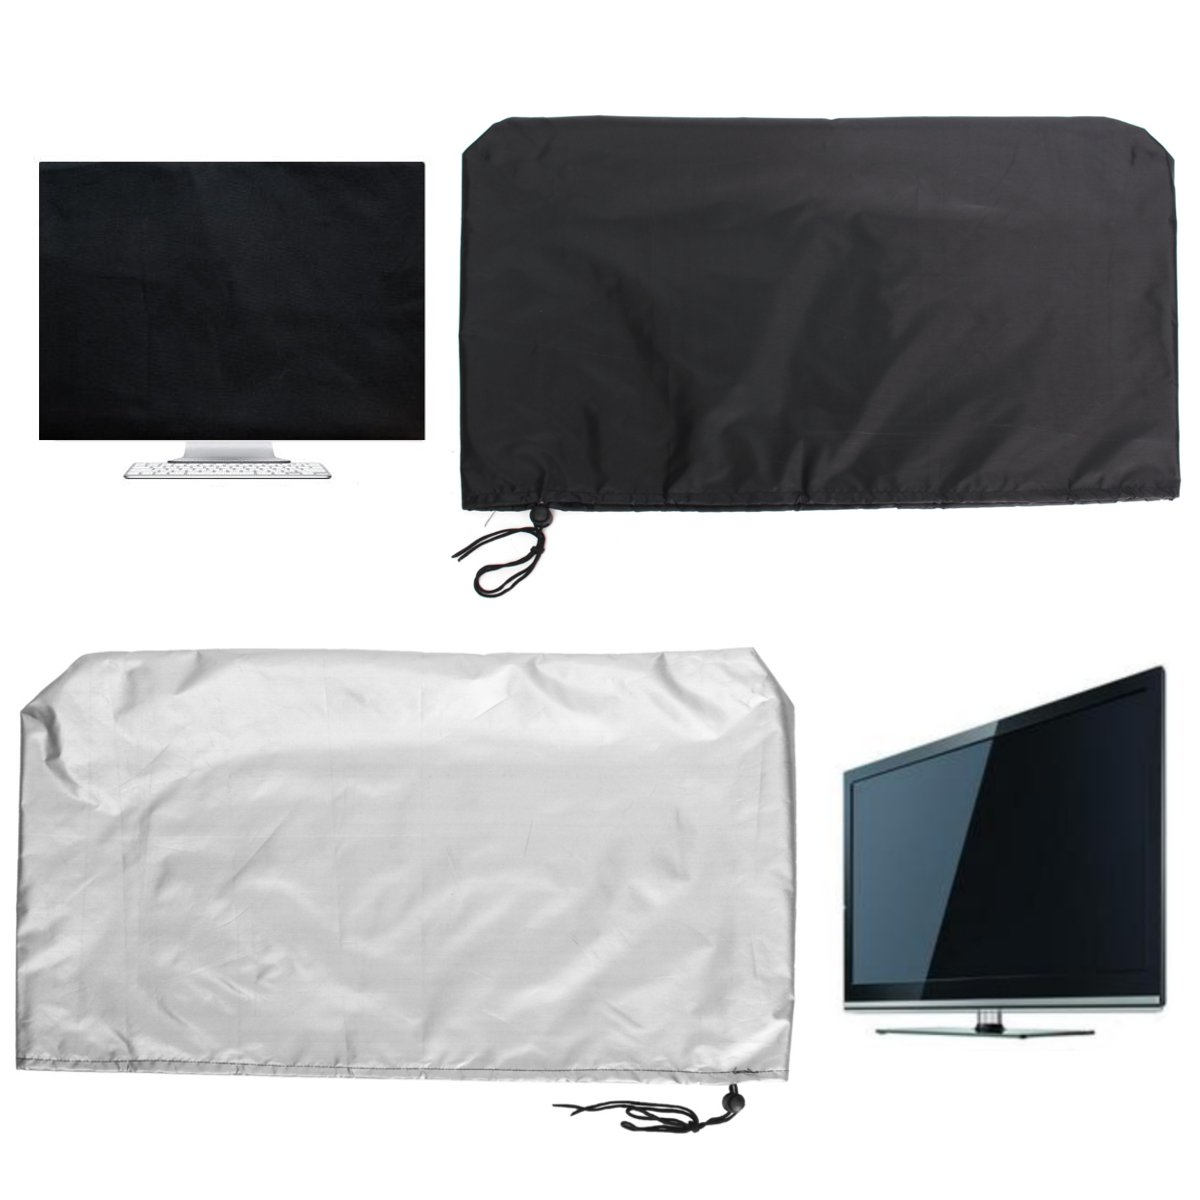 "Computer Tablets Flat Screen Monitor Dust Cover LED PC TV  22/"" Laptop Protector"